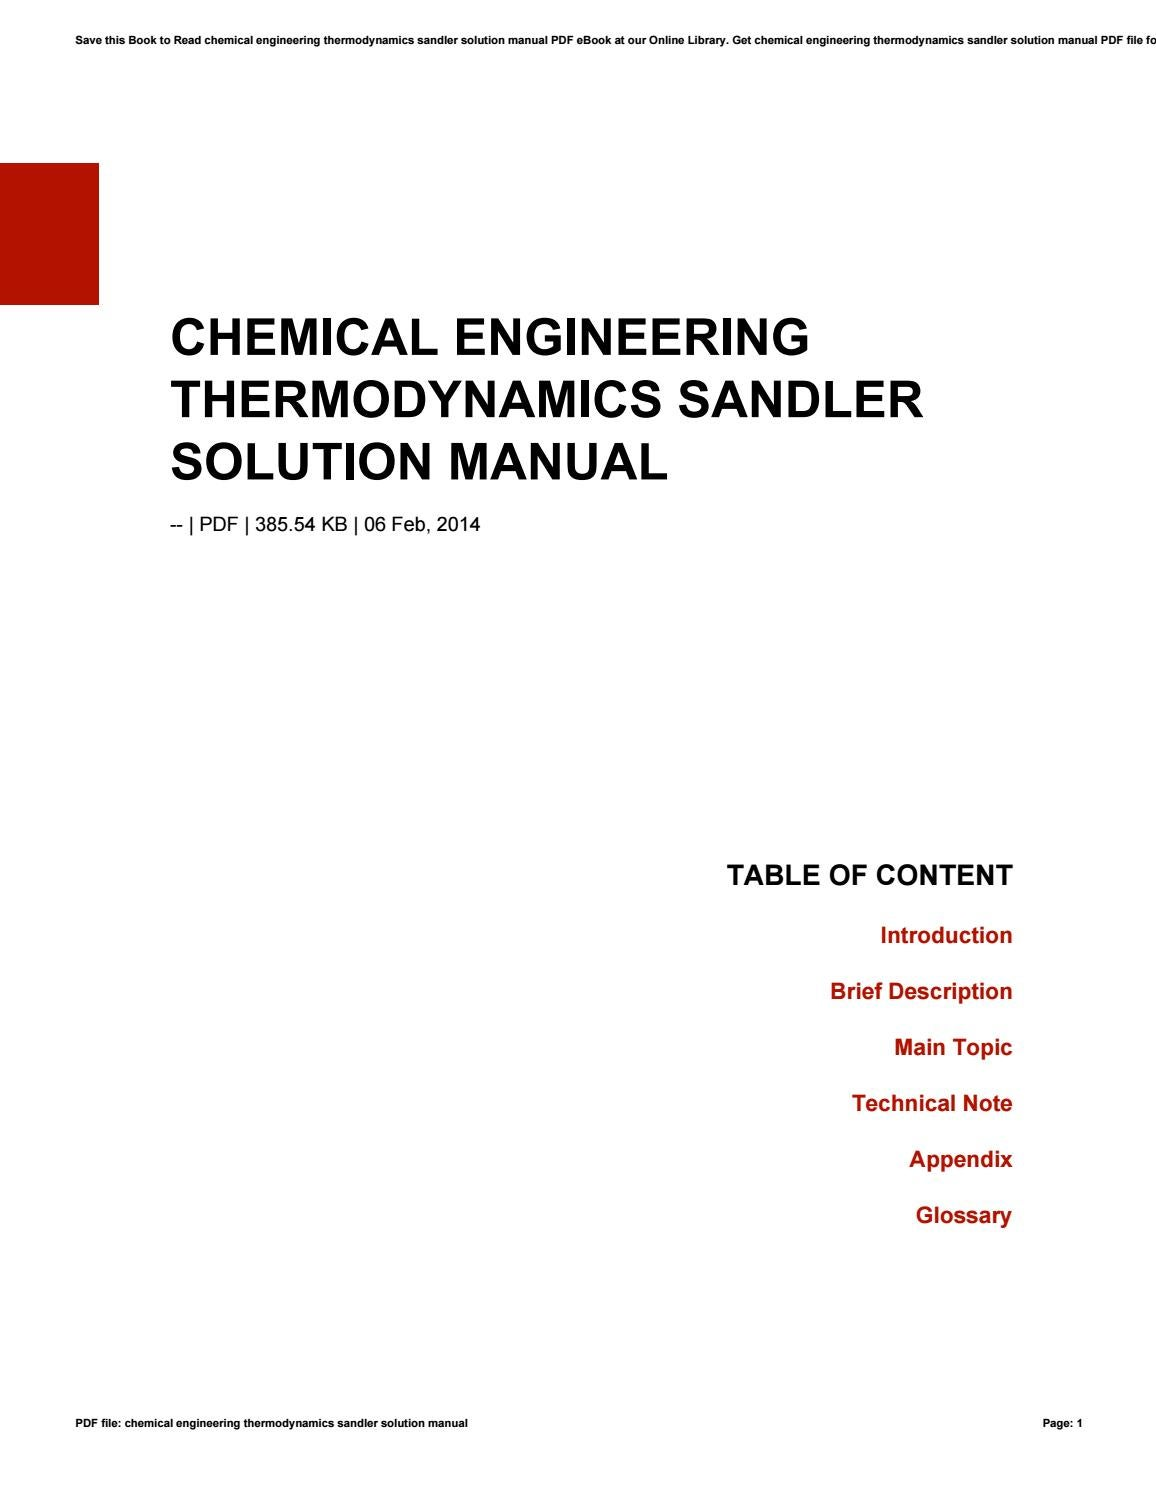 ... Array - chemical engineering thermodynamics sandler solution manual by  rh issuu com